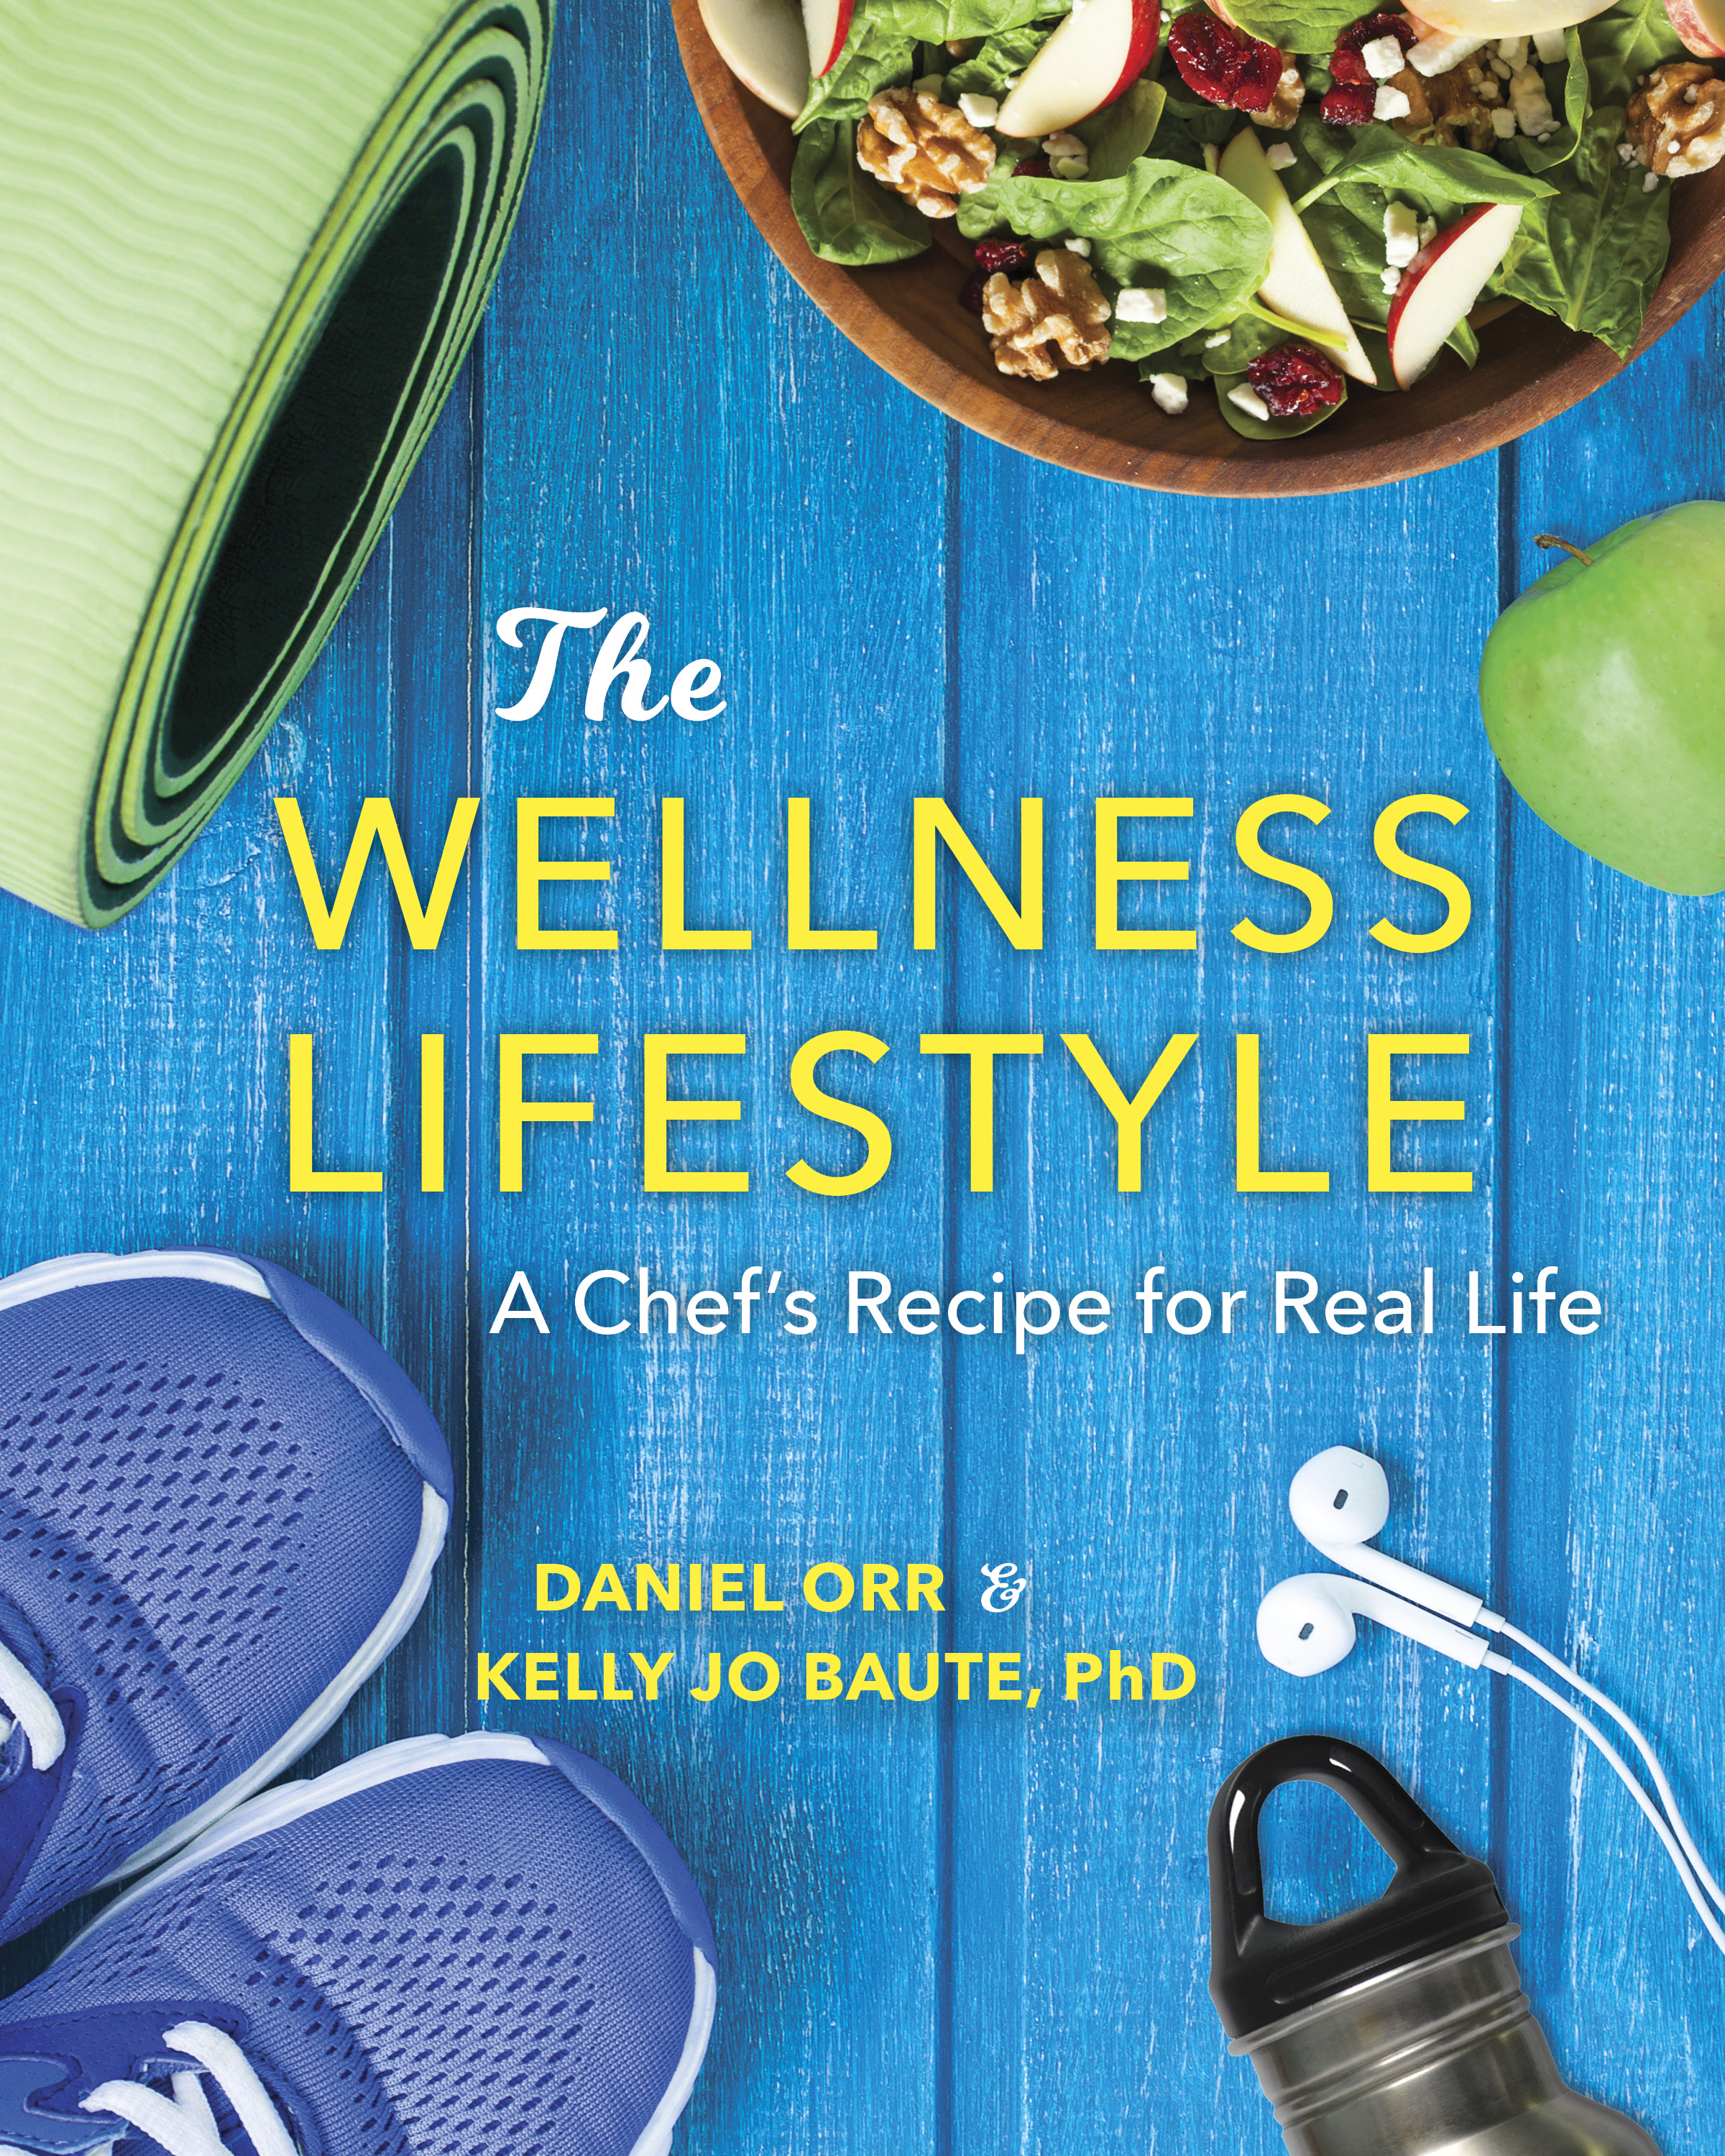 The Wellness Lifestyle: A Chef's Recipe for Real Life.